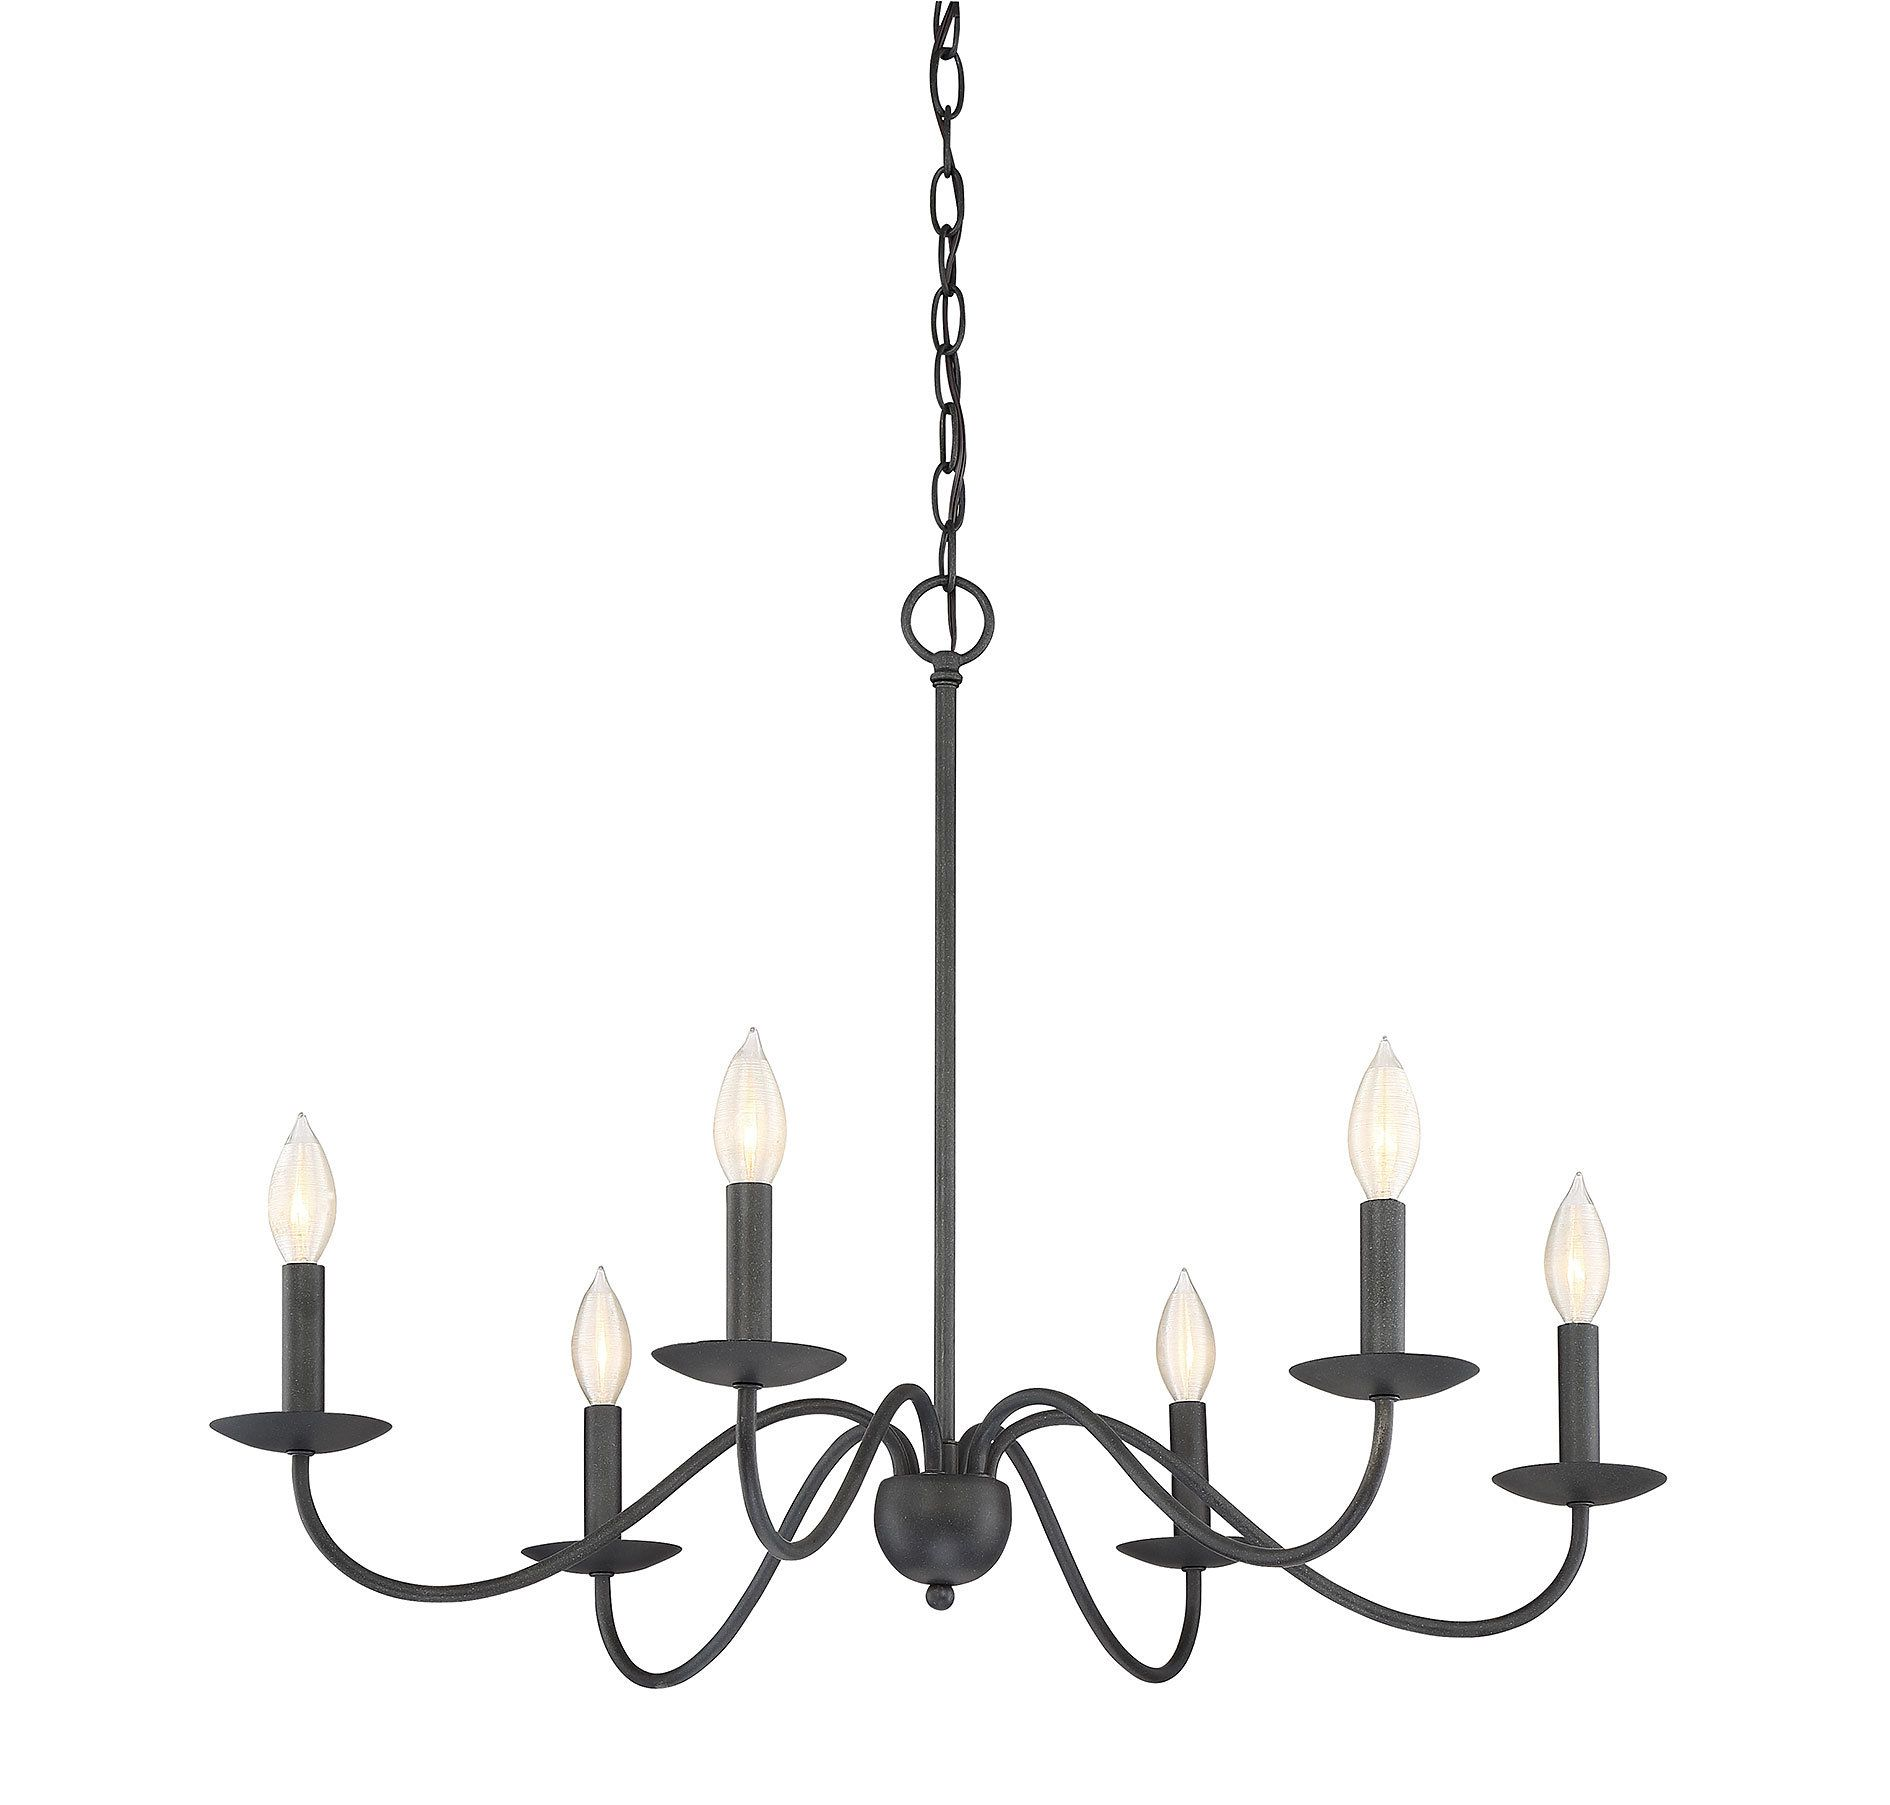 Edgell 5 Light Candle Style Classic Traditional Chandelier